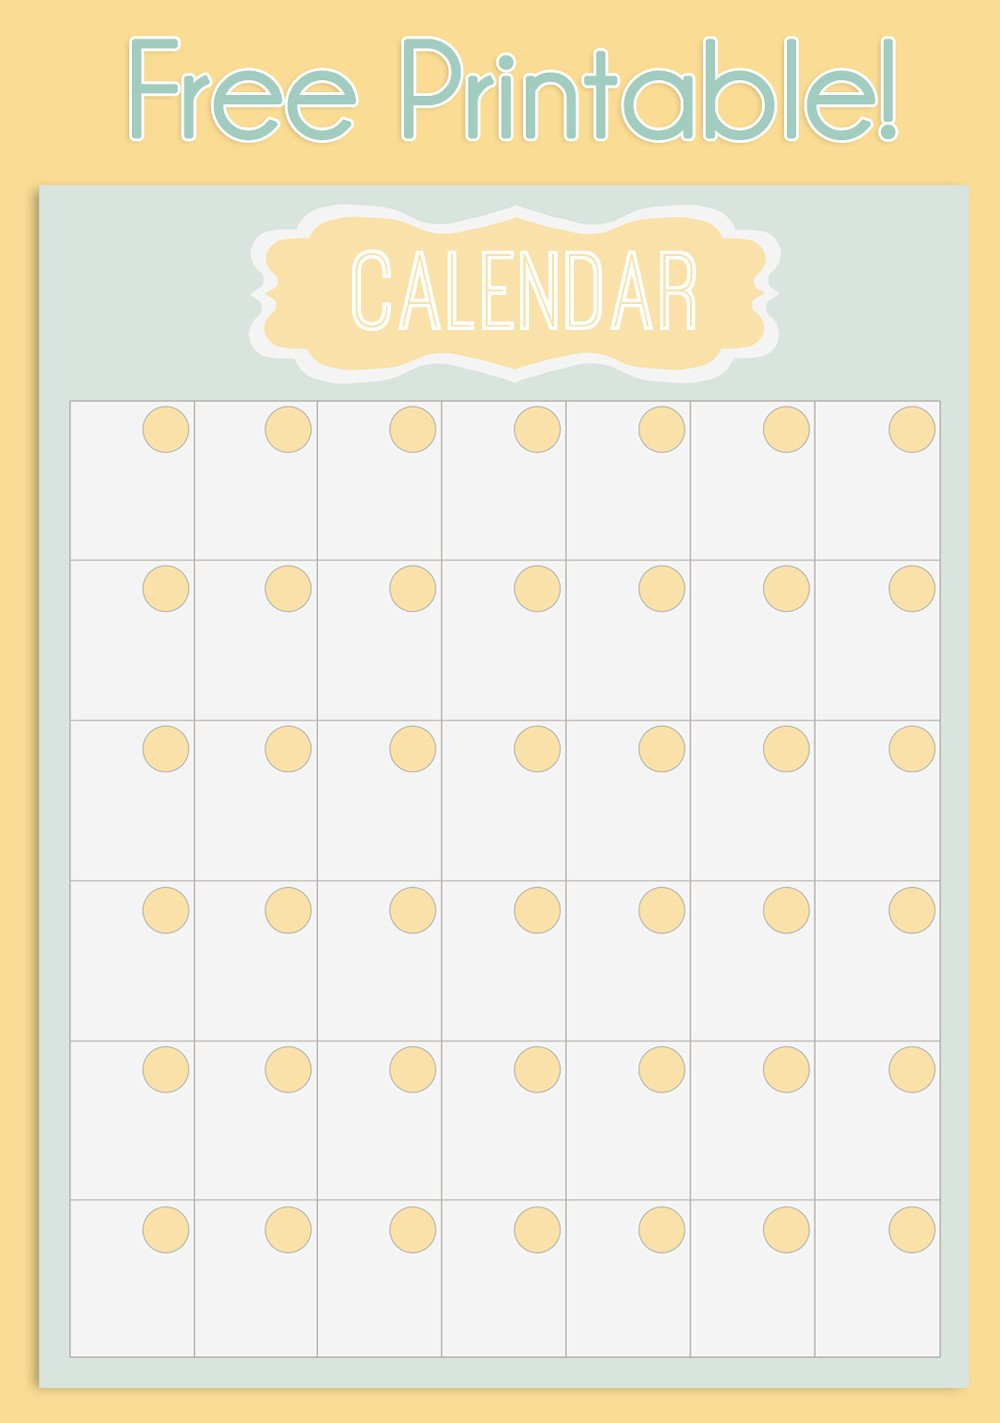 Printable Monthly Calendar Template Free Printable Weekly Meal Planner Calendar